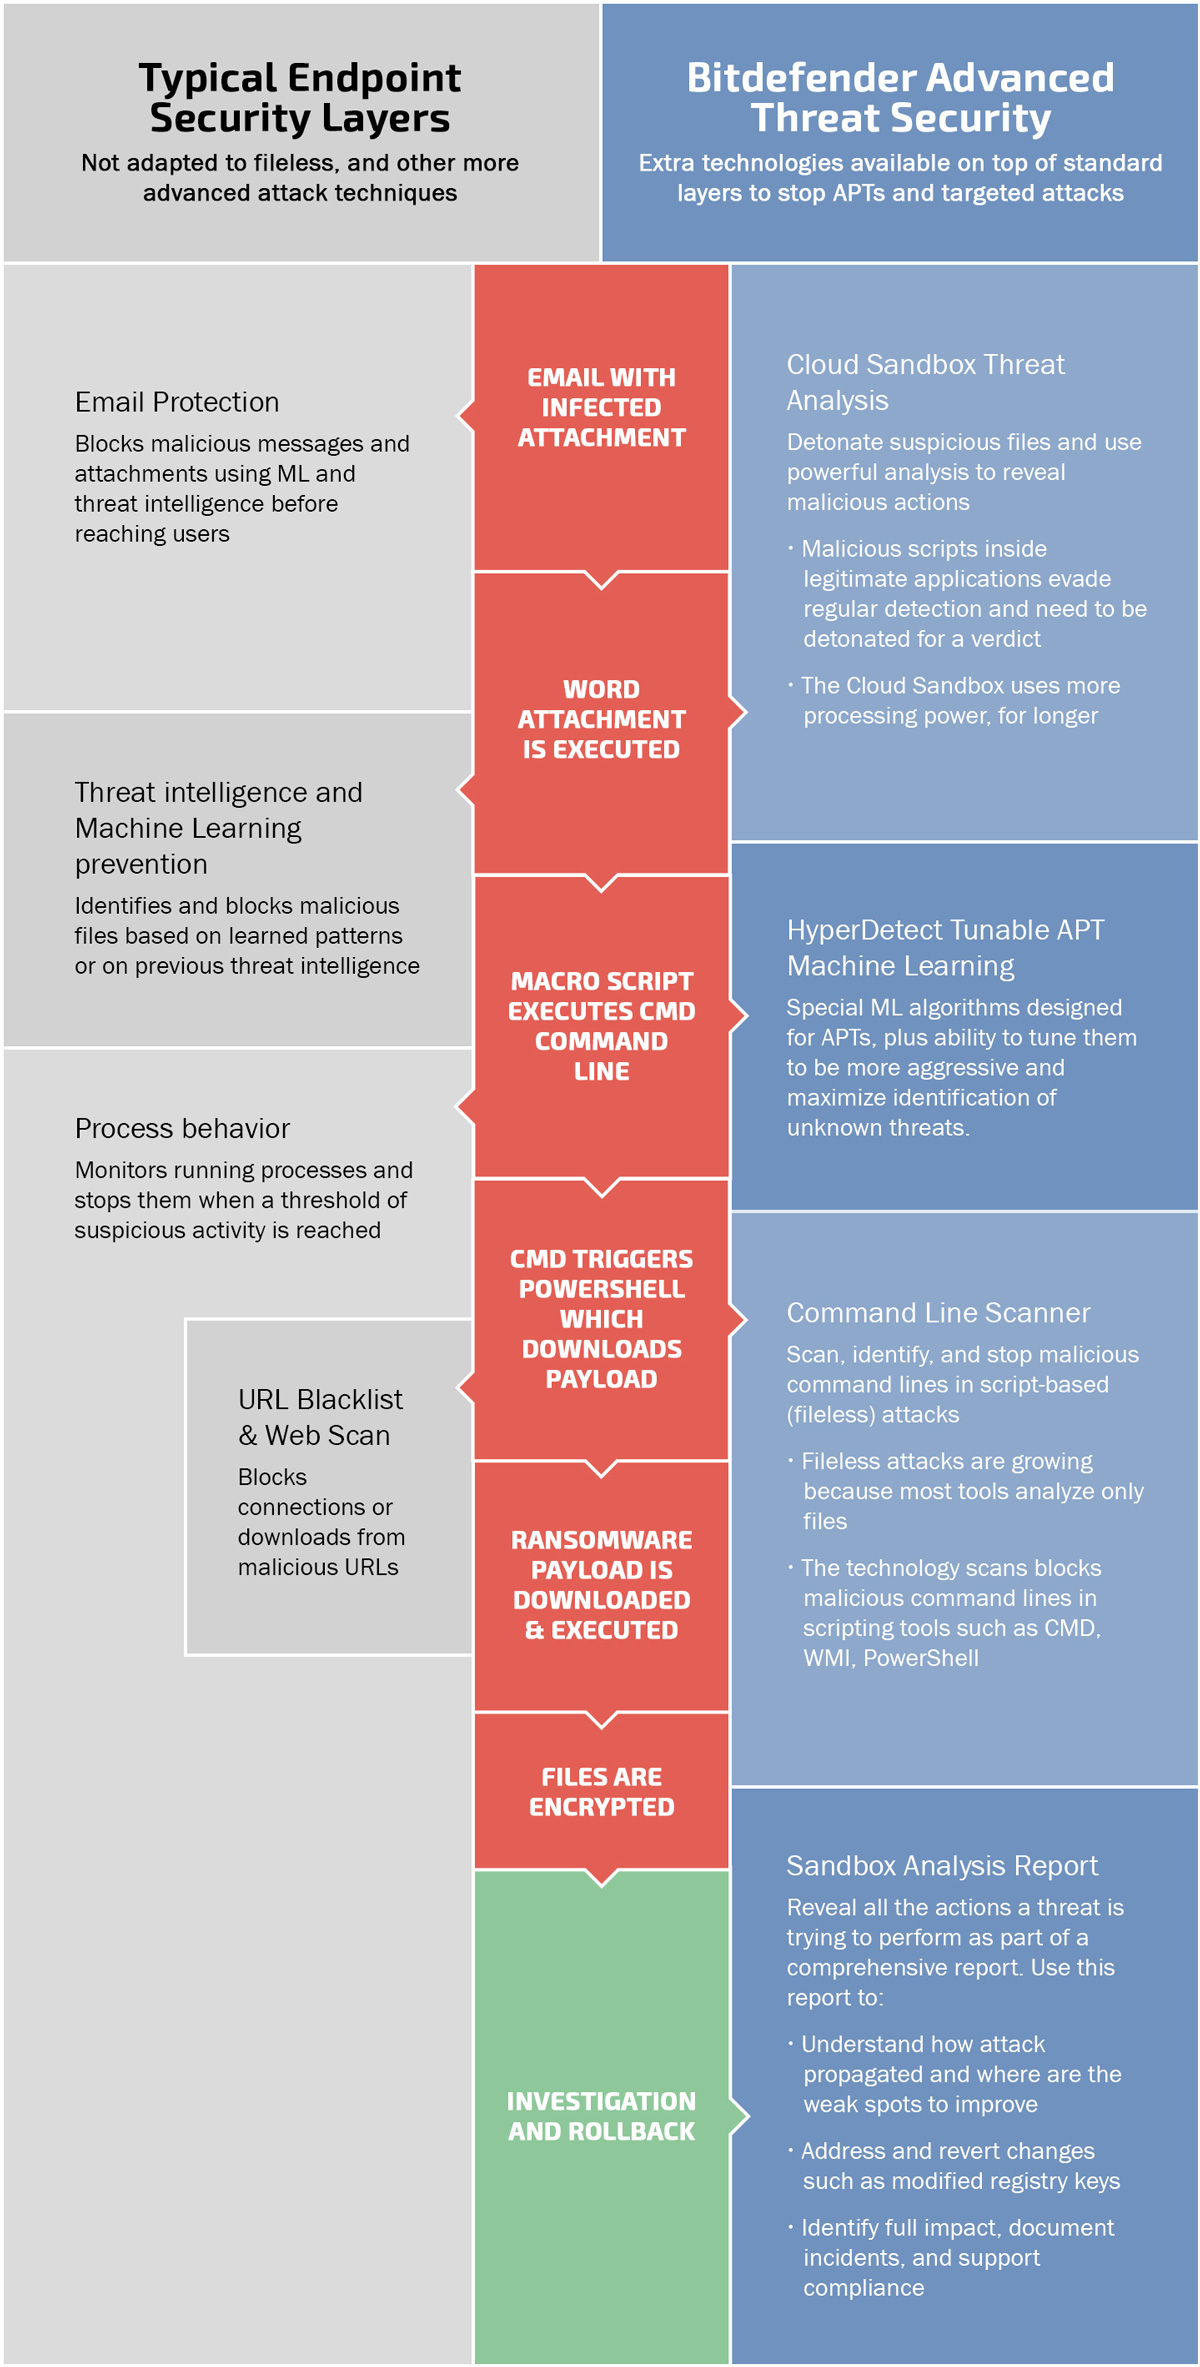 Bitdefender's Advanced Threat Security Solution compared with typical endpoint security solutions layers